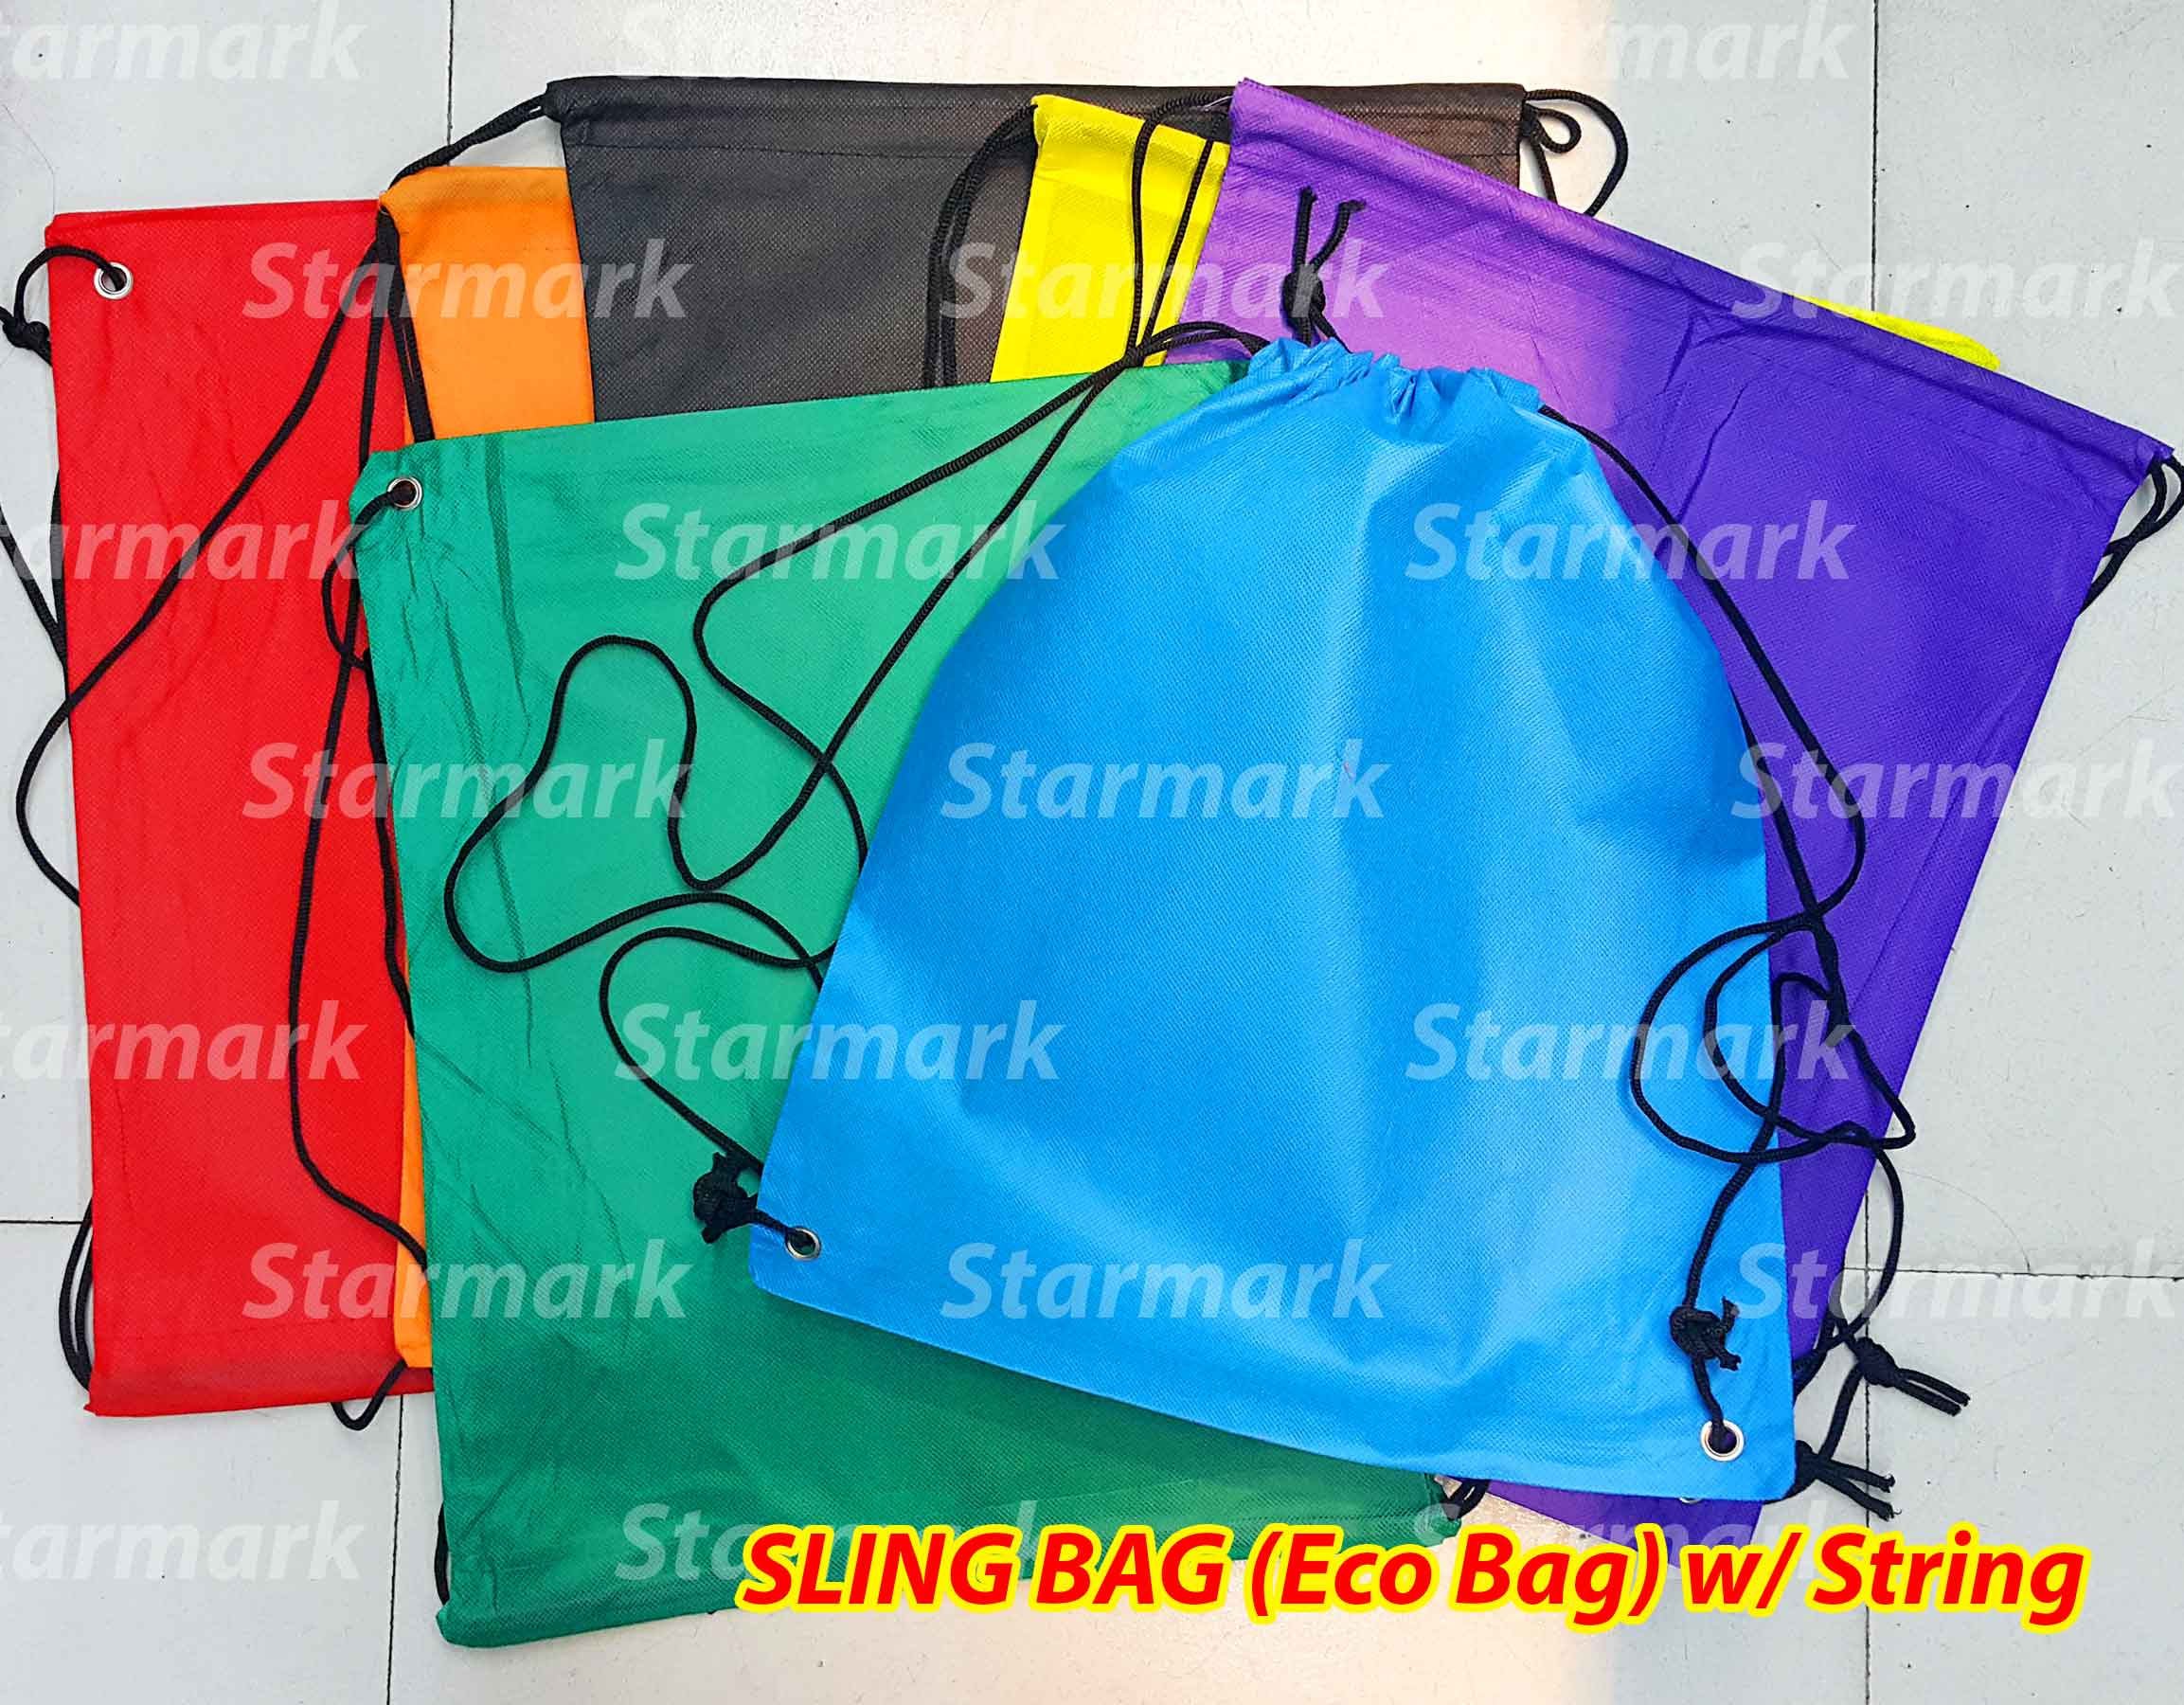 370061e75240 ECO BAGS  ECOBAGS  NON-WOVEN BAGS  (All Prices on this website are VAT EX.)